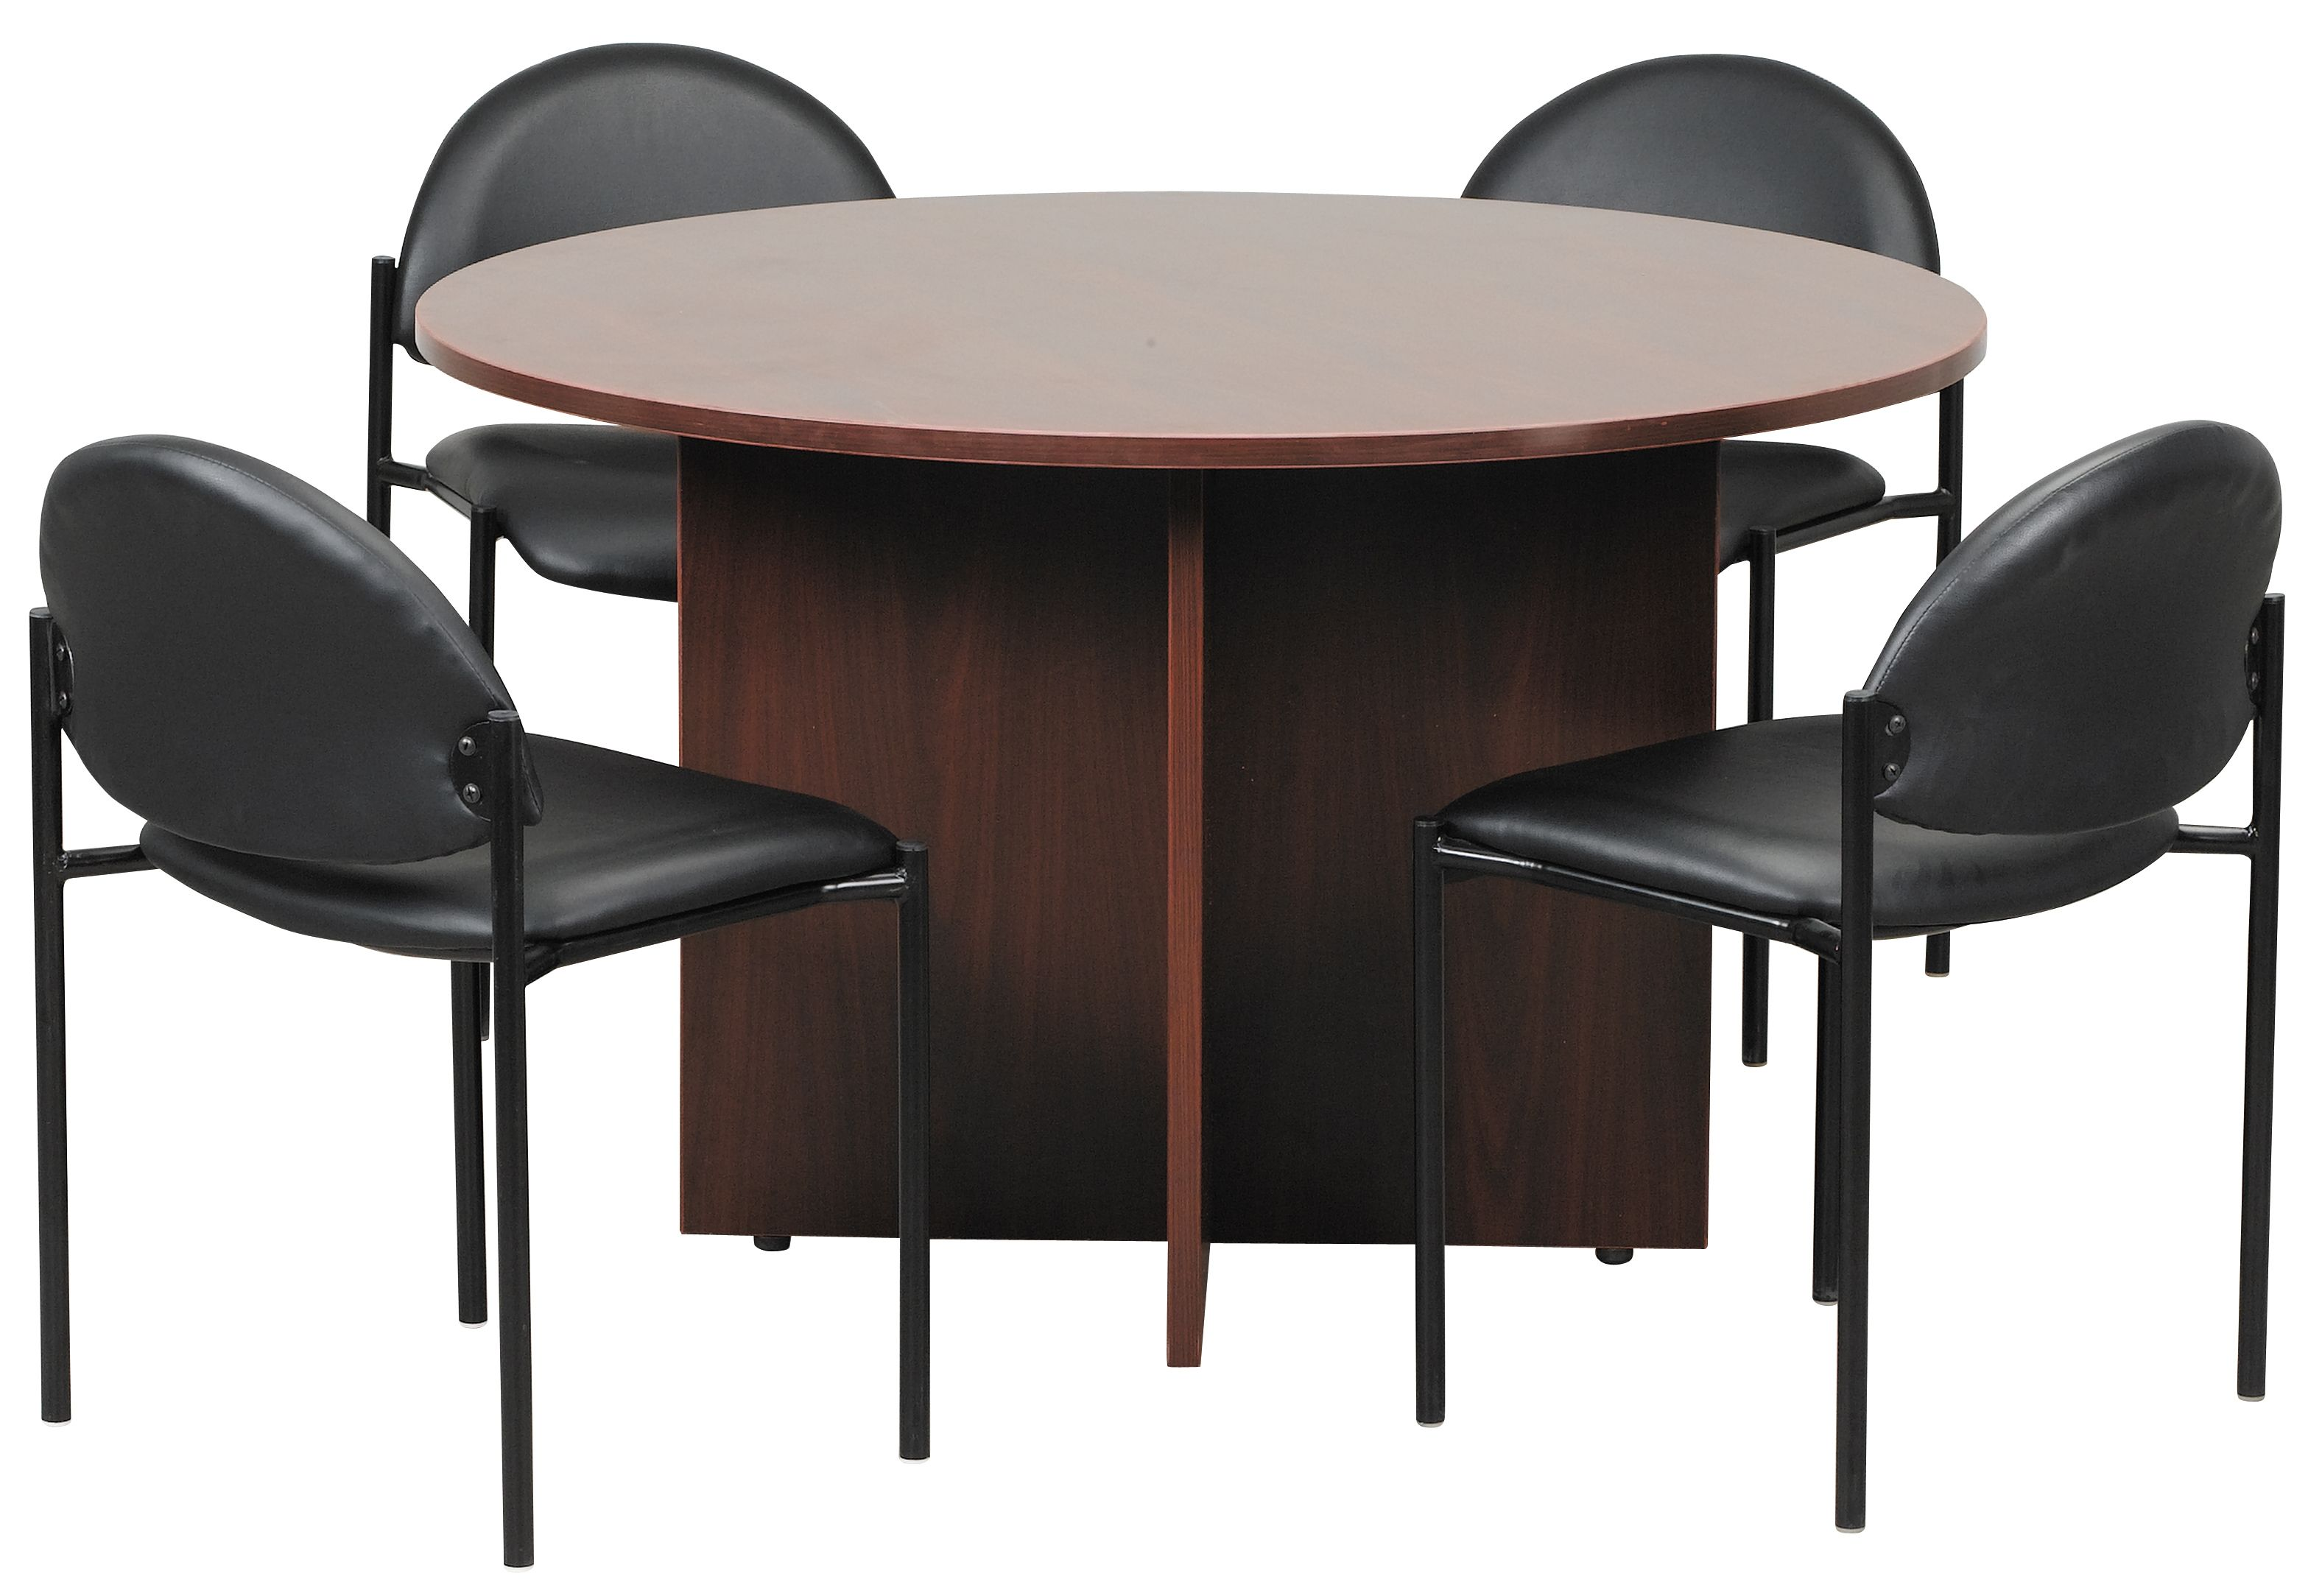 Small Round Office Conference Table Httparghartscom - Small round office conference table